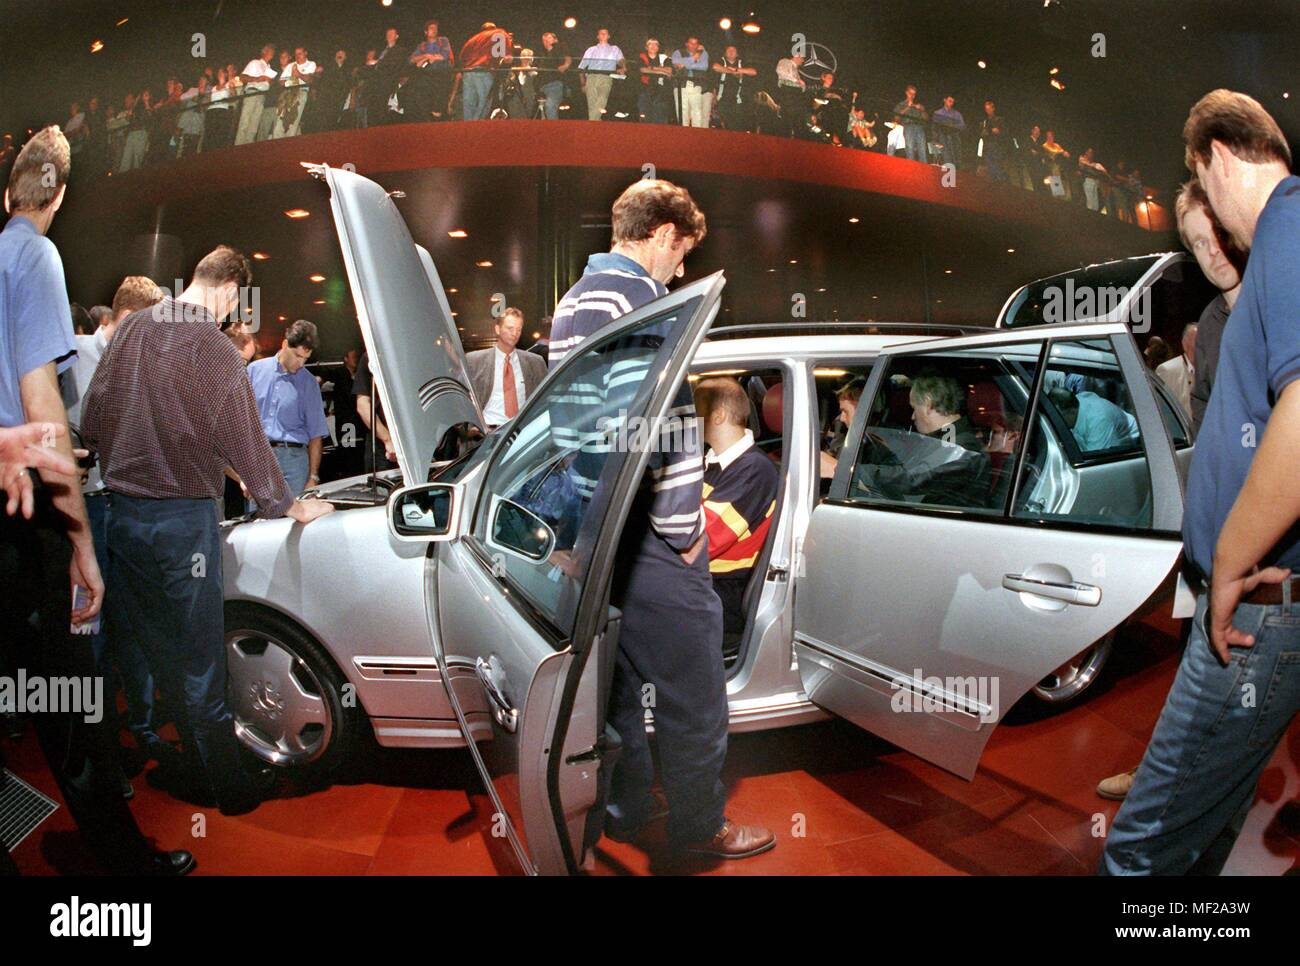 Visitors to the International Motor Show (IAA) look at the Mercedes ML 55 AMG in Frankfurt am Main on 18.9.1999. Two days after the official launch, the IAA is now open to the general public. The world's most important car show is expected to attract nearly 900,000 visitors to the fairgrounds by 26 September. | usage worldwide - Stock Image